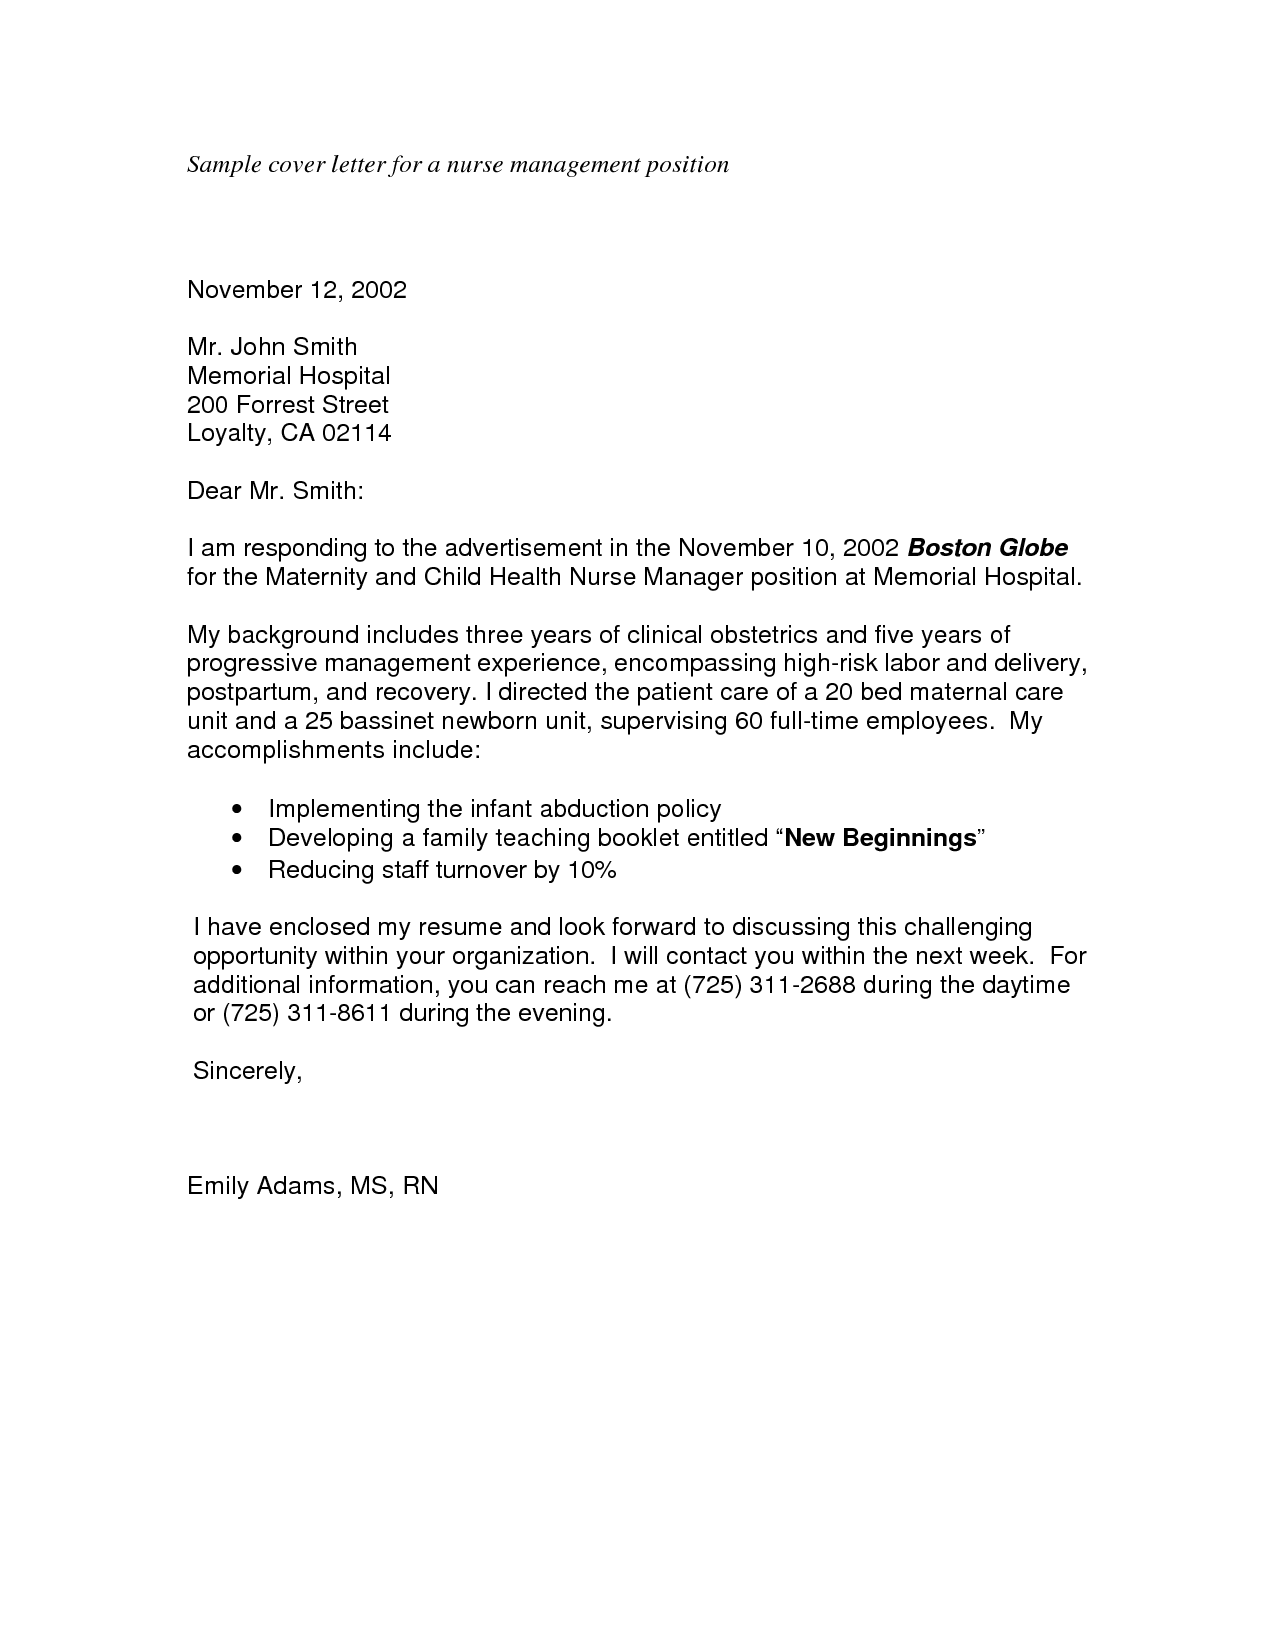 cover letter format nursing director cover letter examplescover sample nursing application cover letters sample cover letter for a nurse management position pdf